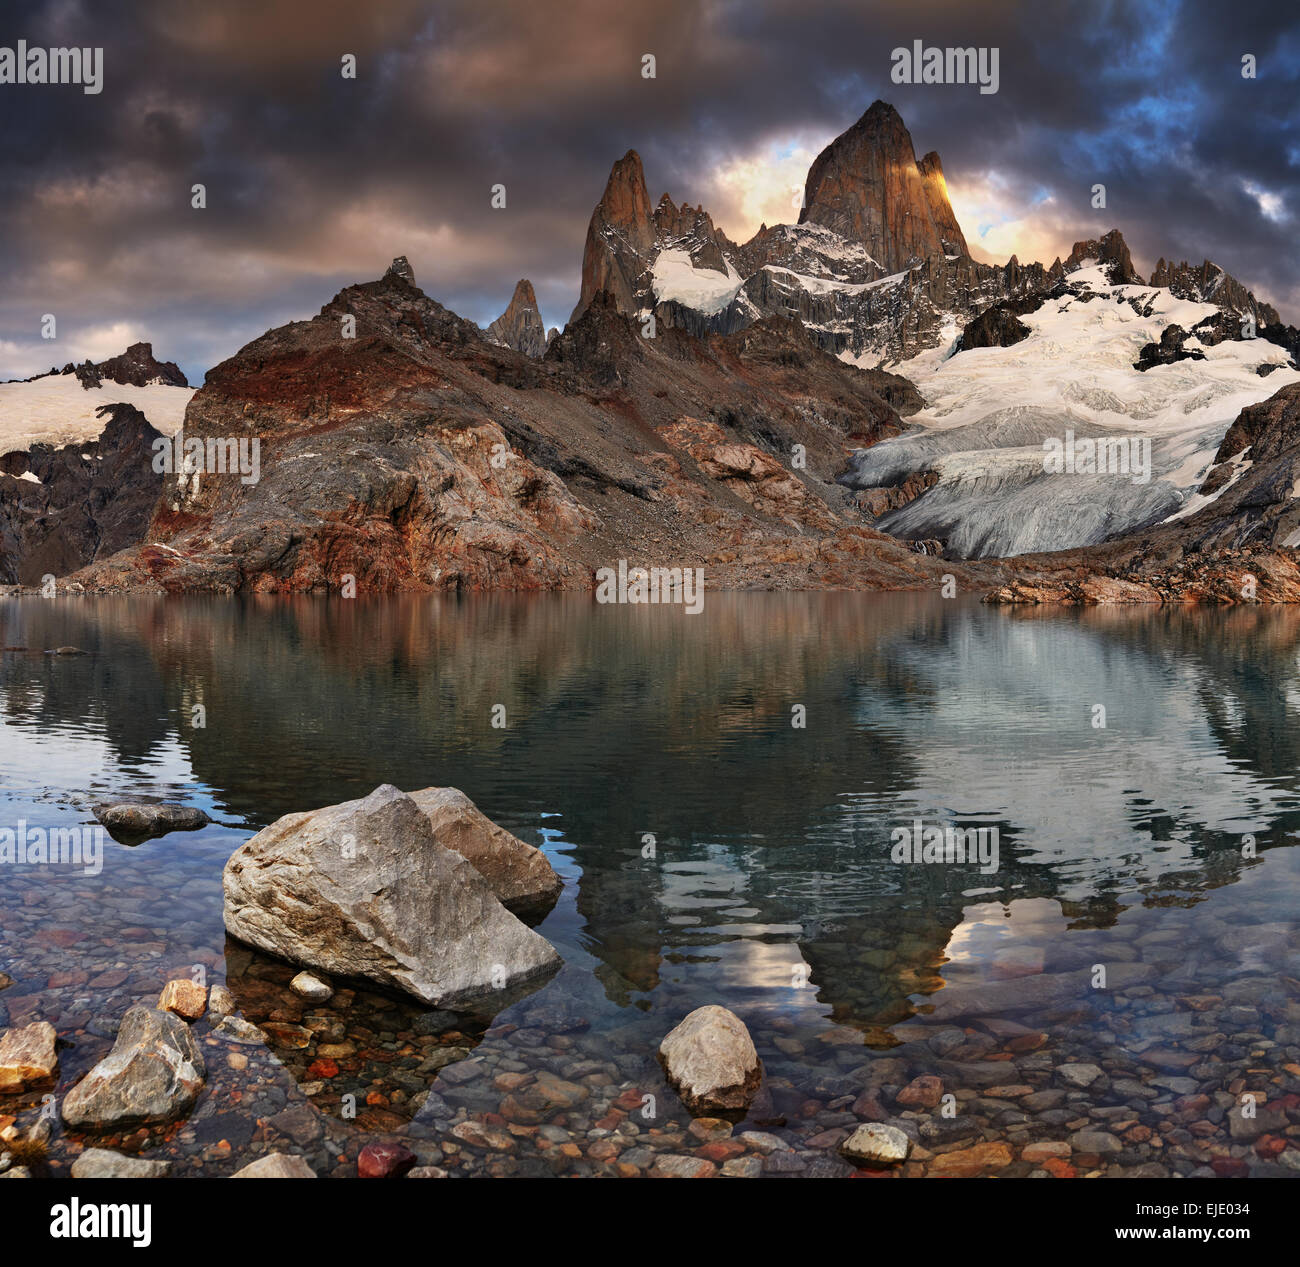 Laguna de Los Tres and mount Fitz Roy at sunrise, Patagonia, Argentina - Stock Image